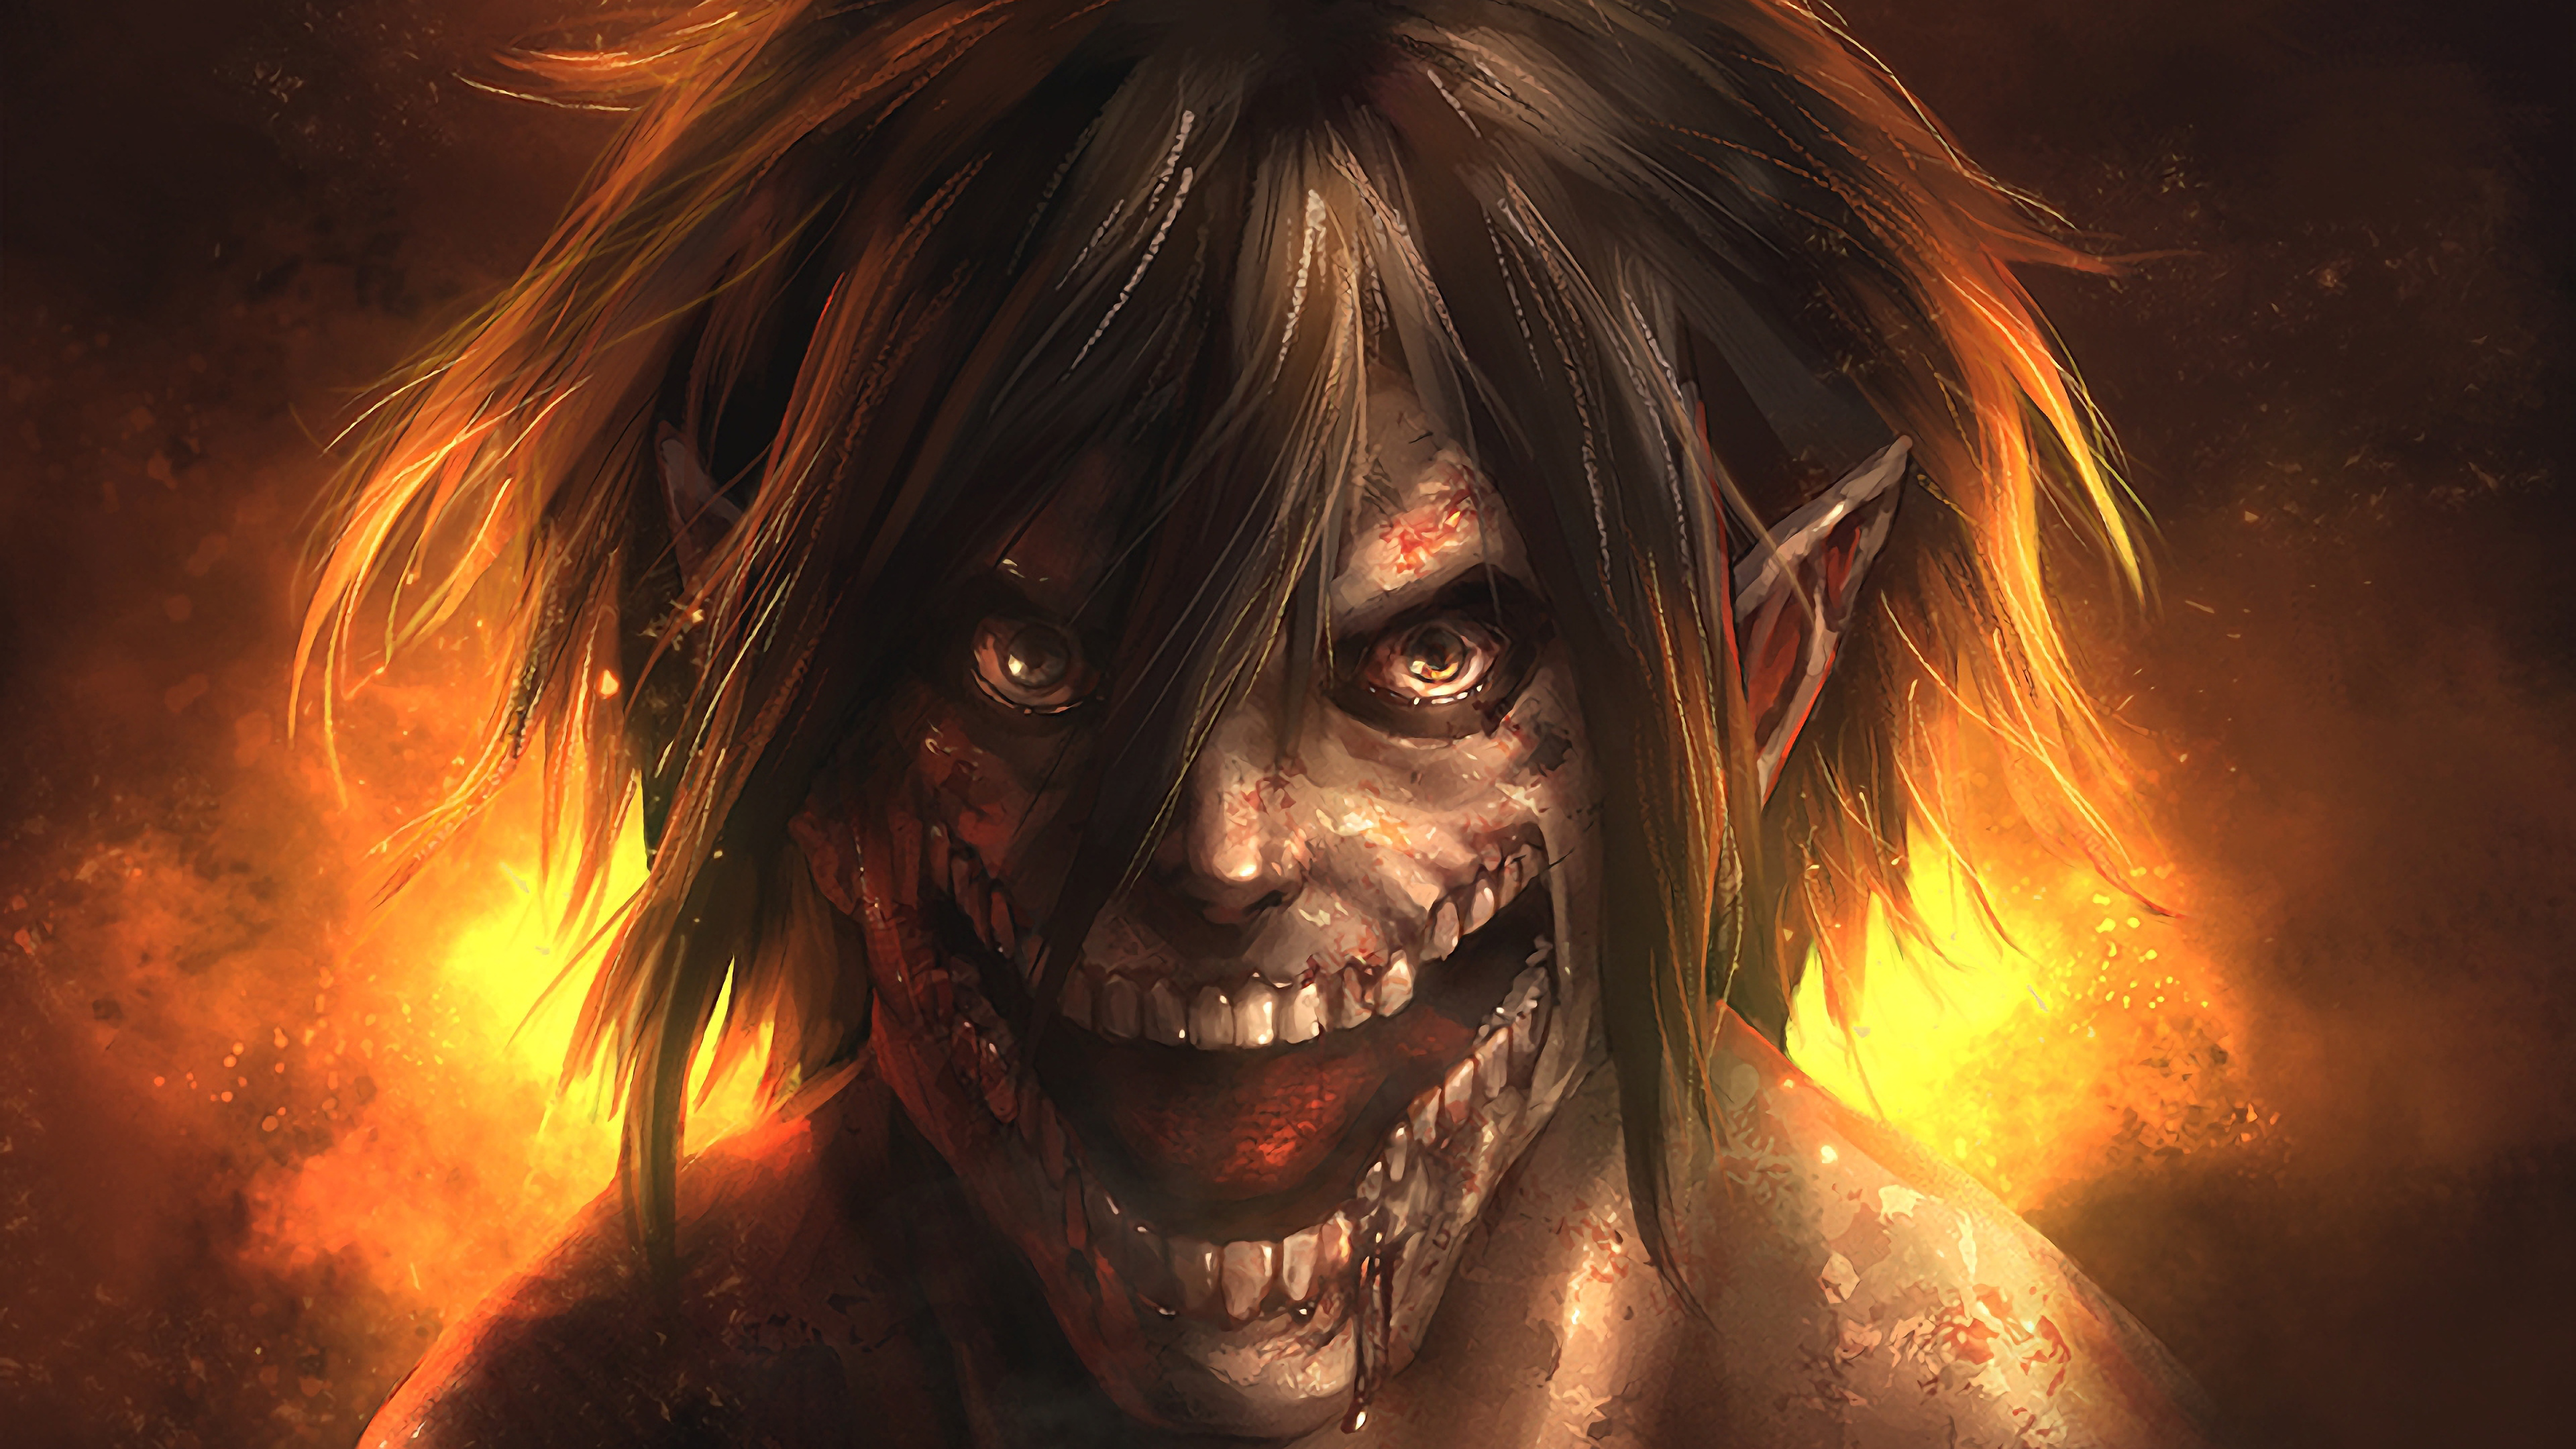 Attack On Titan 2232754 Hd Wallpaper Backgrounds Download